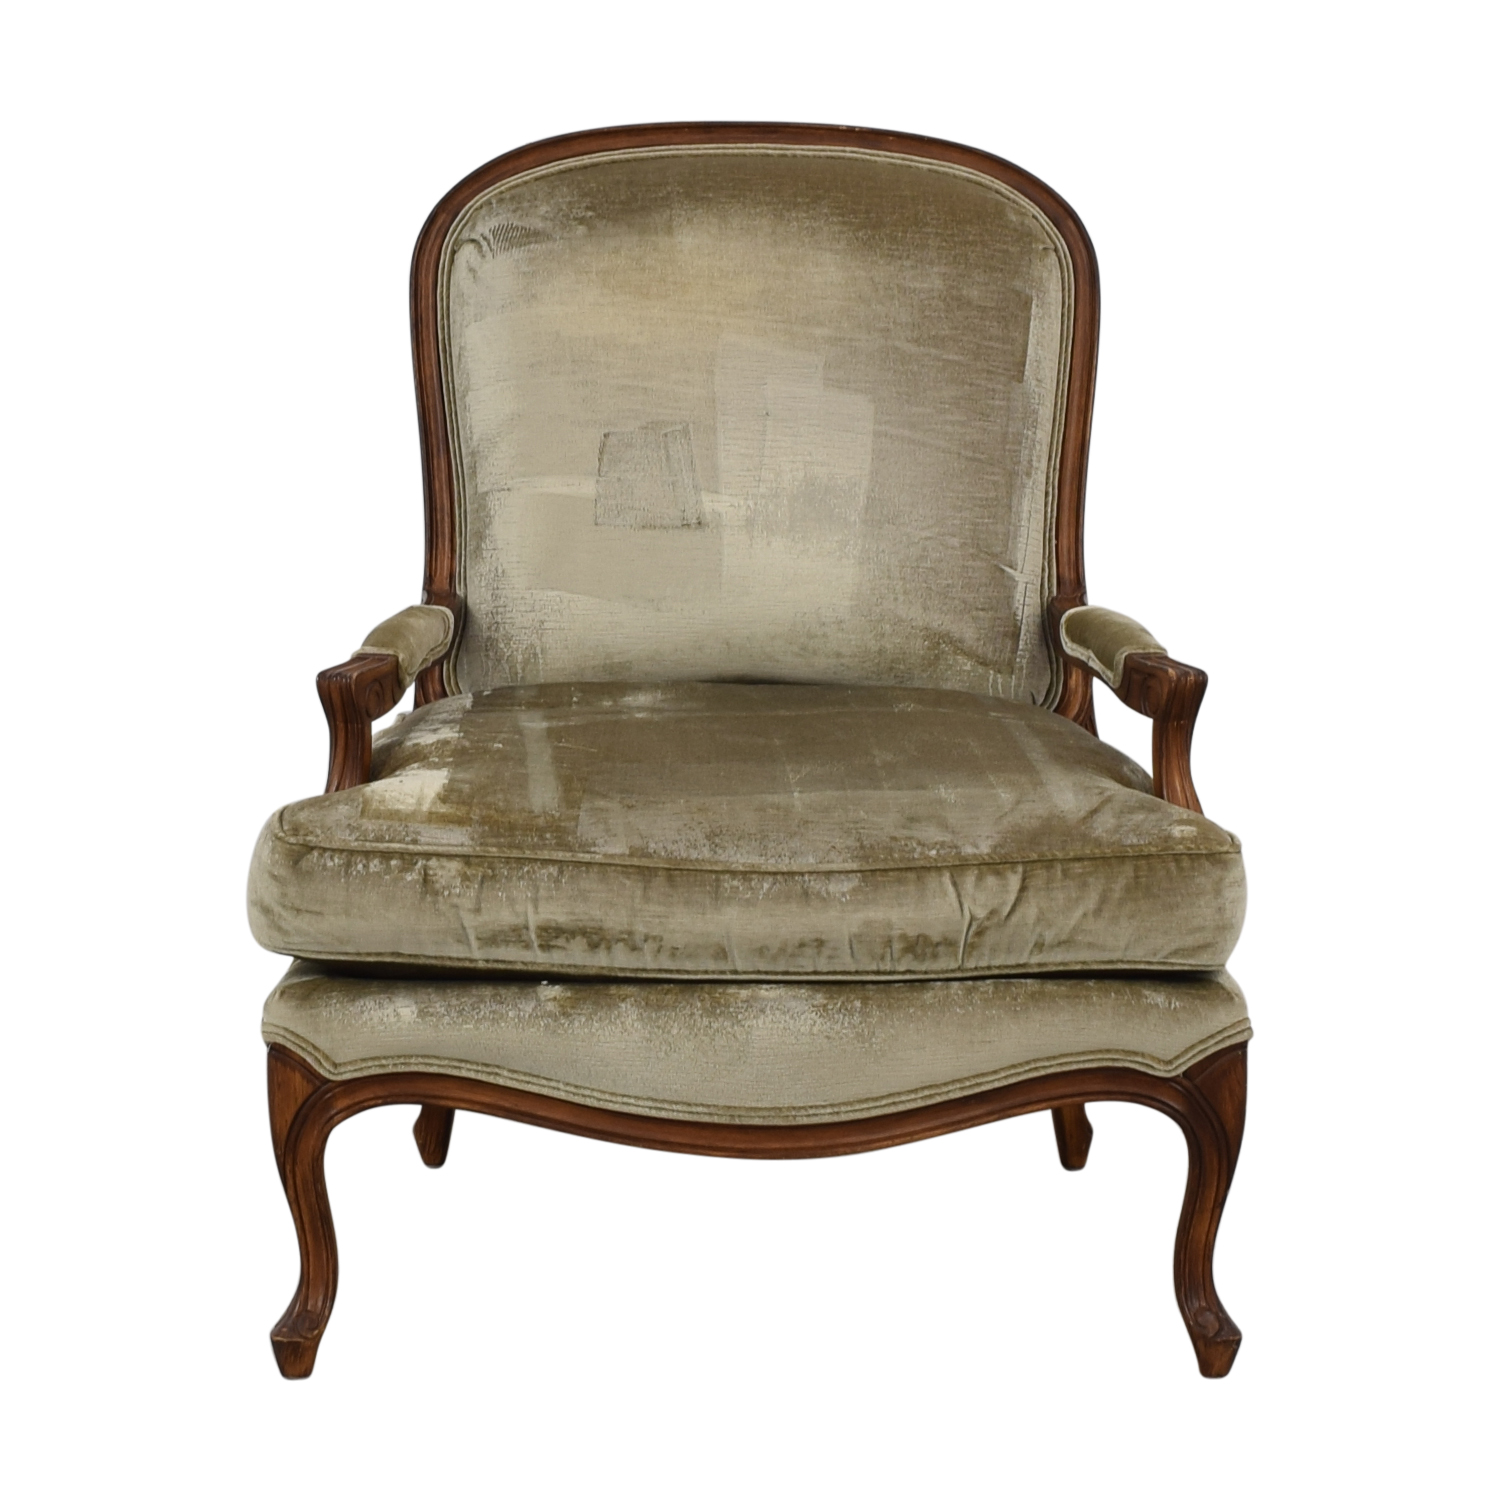 buy Drexel Heritage Country French Accent Chair Drexel Heritage Accent Chairs